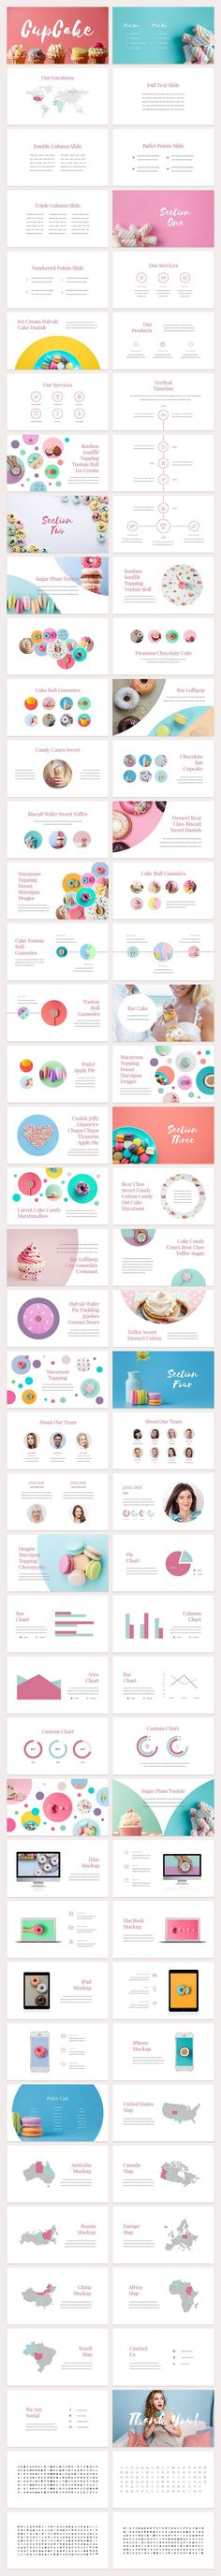 CupCake is a personable, creative and clean presentation template for both PowerPoint and Keynote